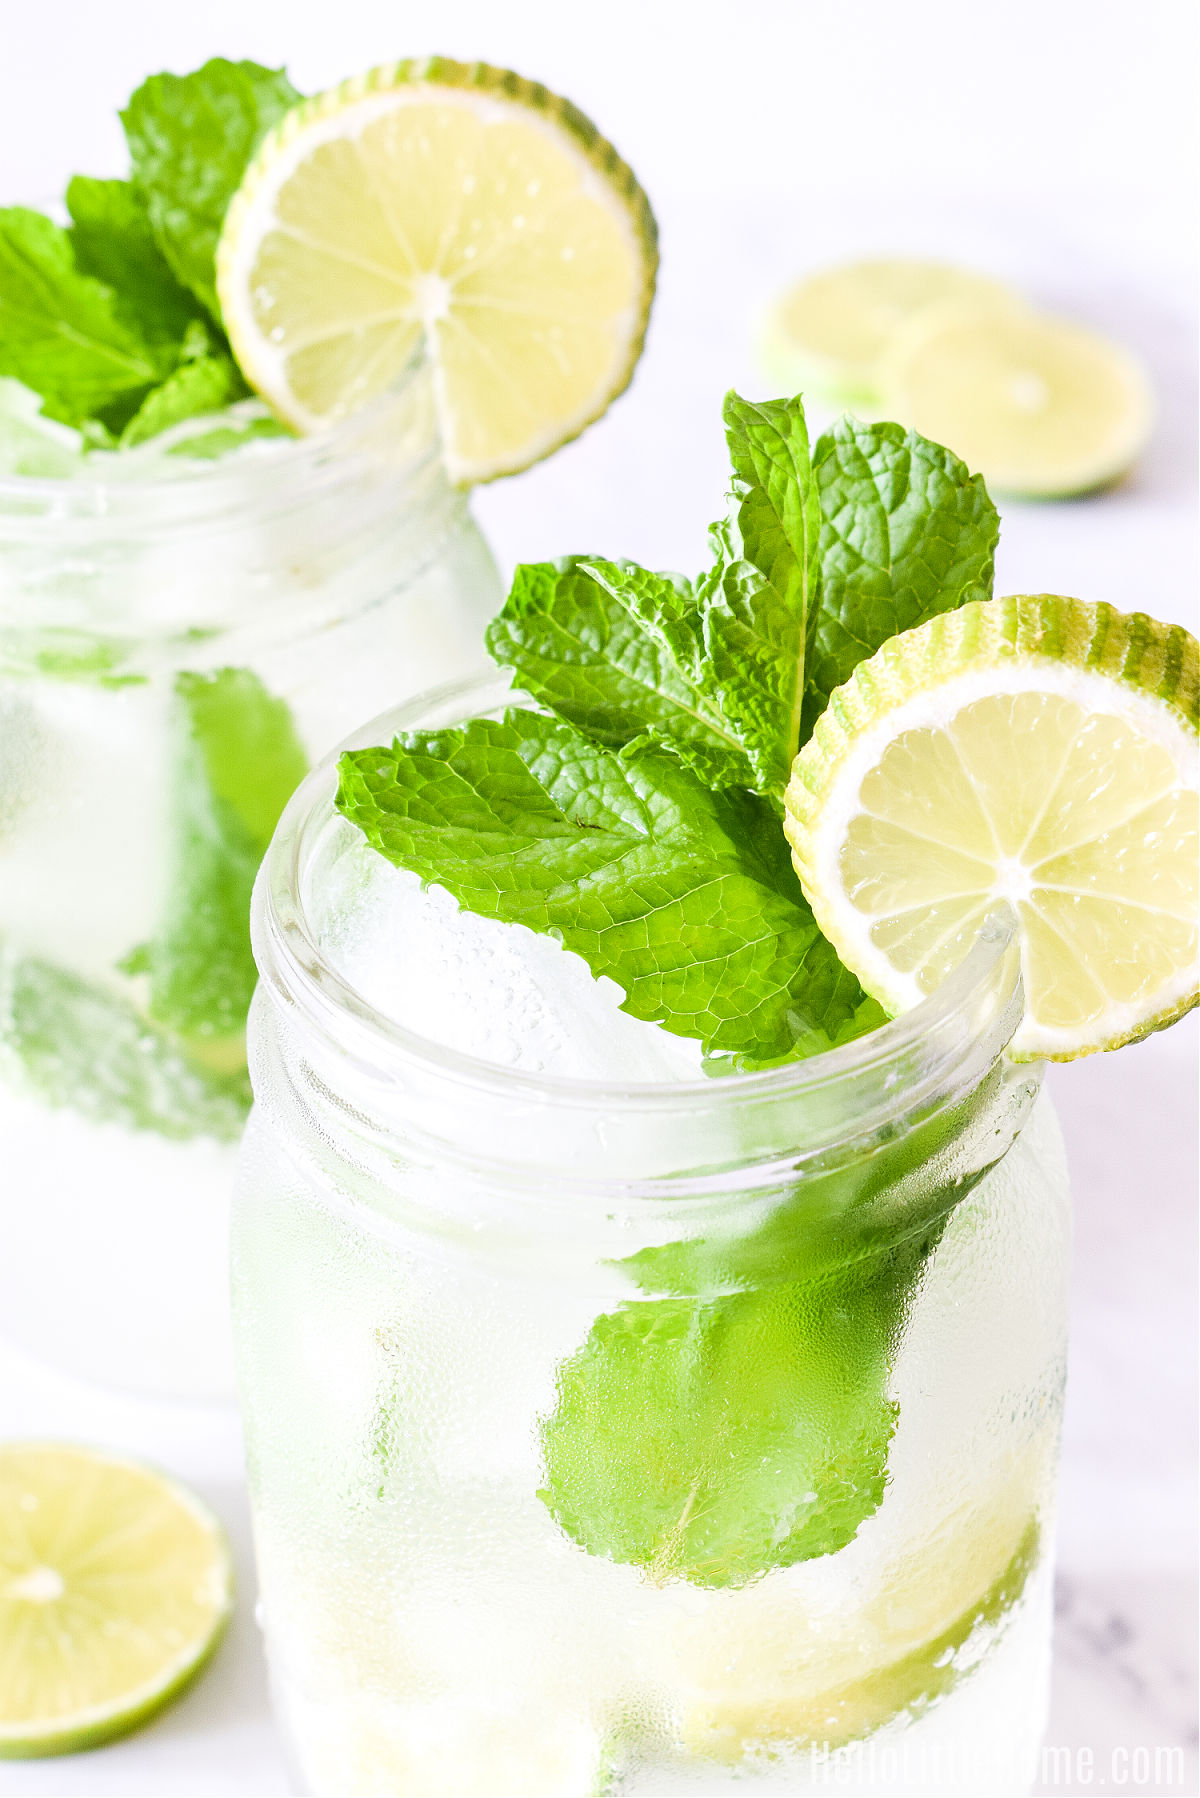 This finished drink recipe served in a mason jar with a mint and lime garnish.